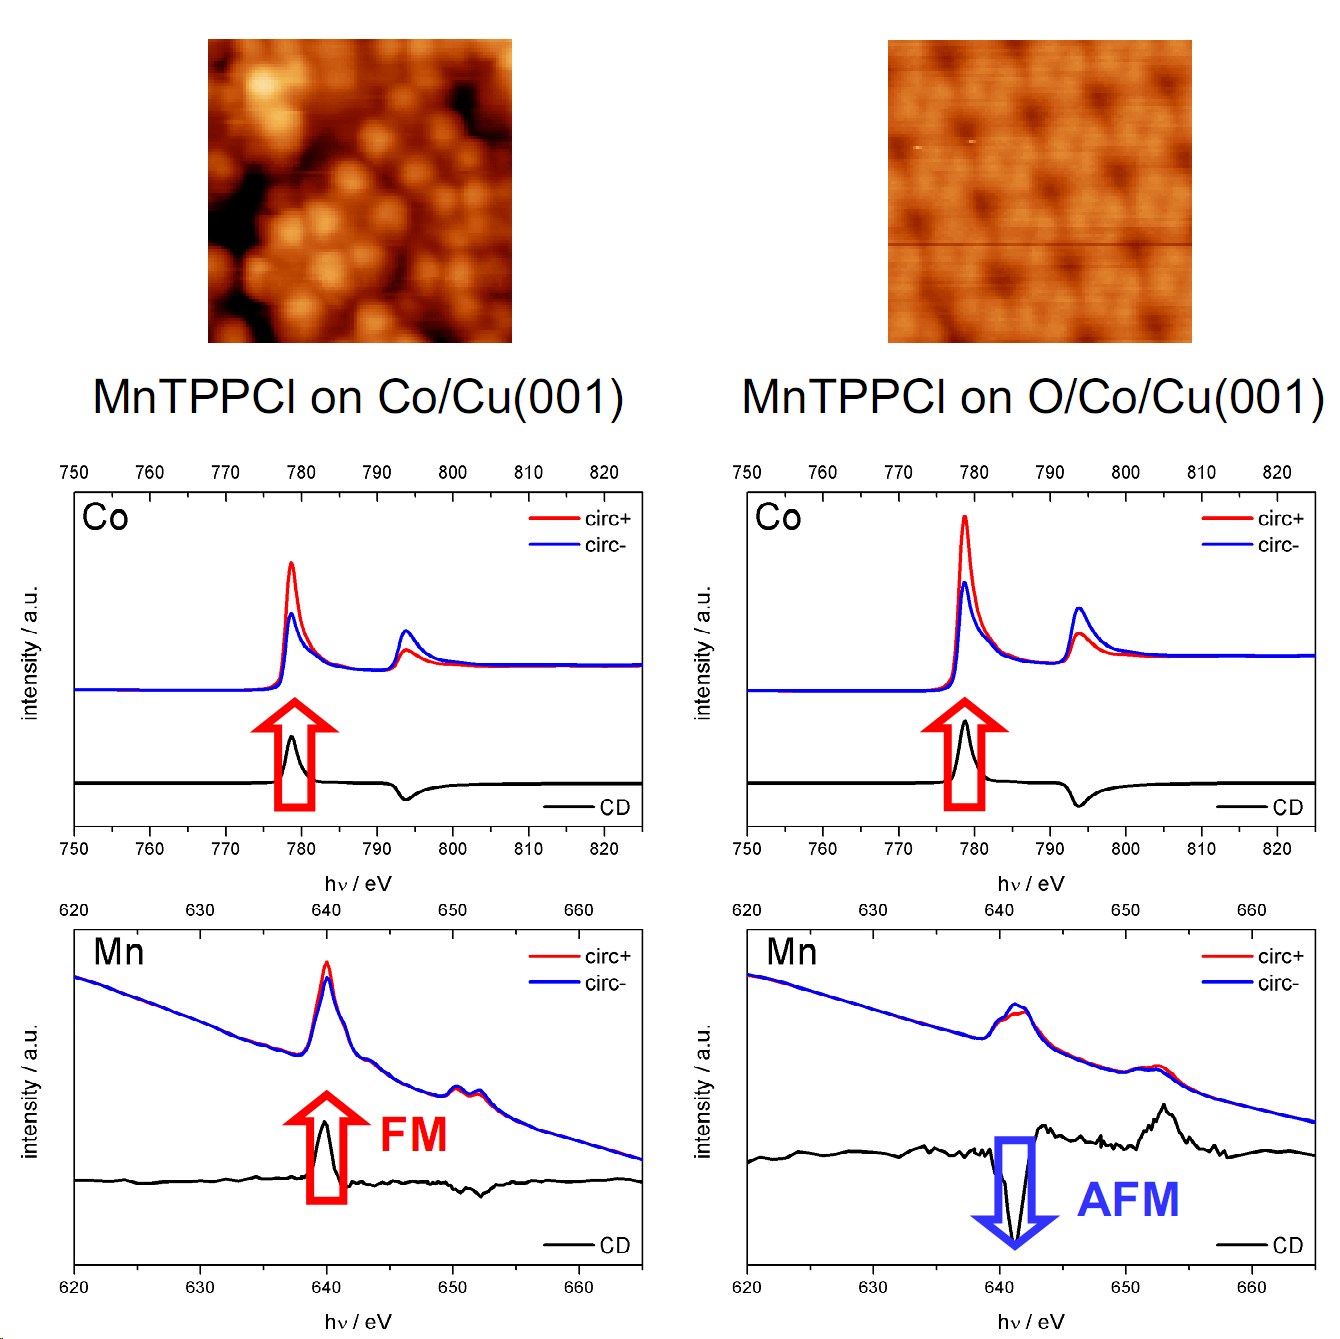 Fig.1 STM (top) and XAS/XMCD (bottom) data of MnTPPCl (Mn tetraphenylporphyrin chloride) sublimed onto Co (left) and onto oxygen-reconstructed Co (right). In case of MnTPPCl on Co, the XMCD evidences a ferromagnetic coupling between the substrate (Co) and the Mn in the molecule. MnTPPCl on O/Co however, is antiferromagnetically coupled to the substrate.